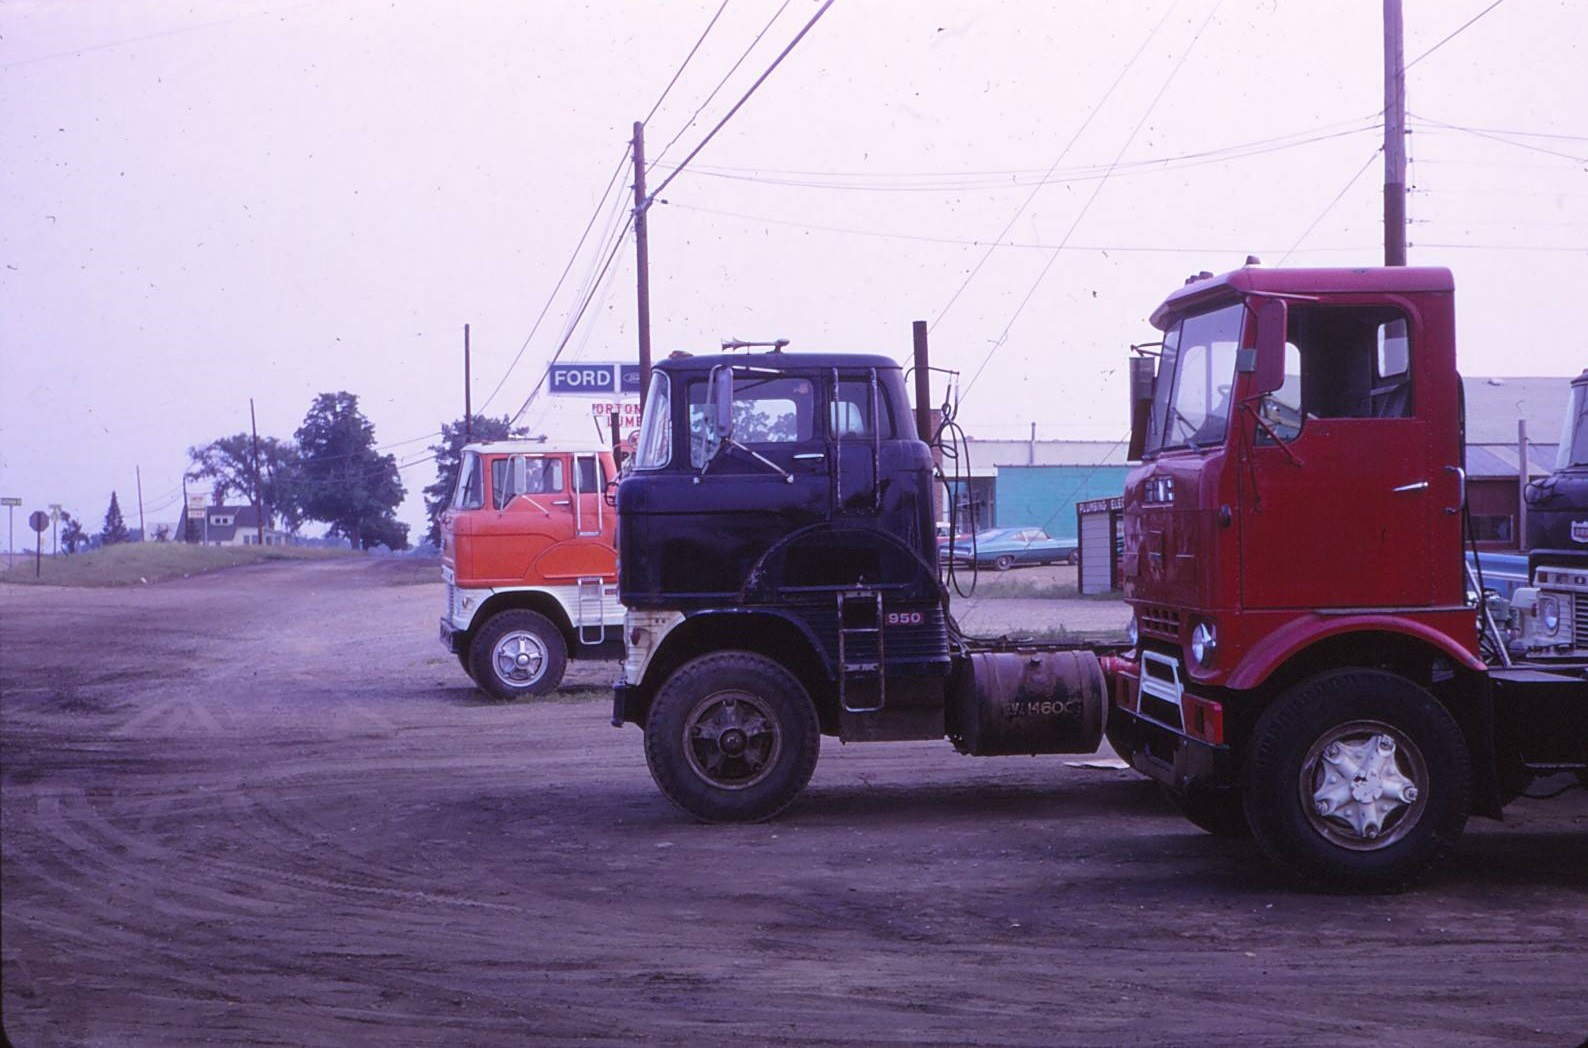 pethick-Trucking-1960--Falcon-truck--Ronald-Pethick-JR-Archive-2[1]